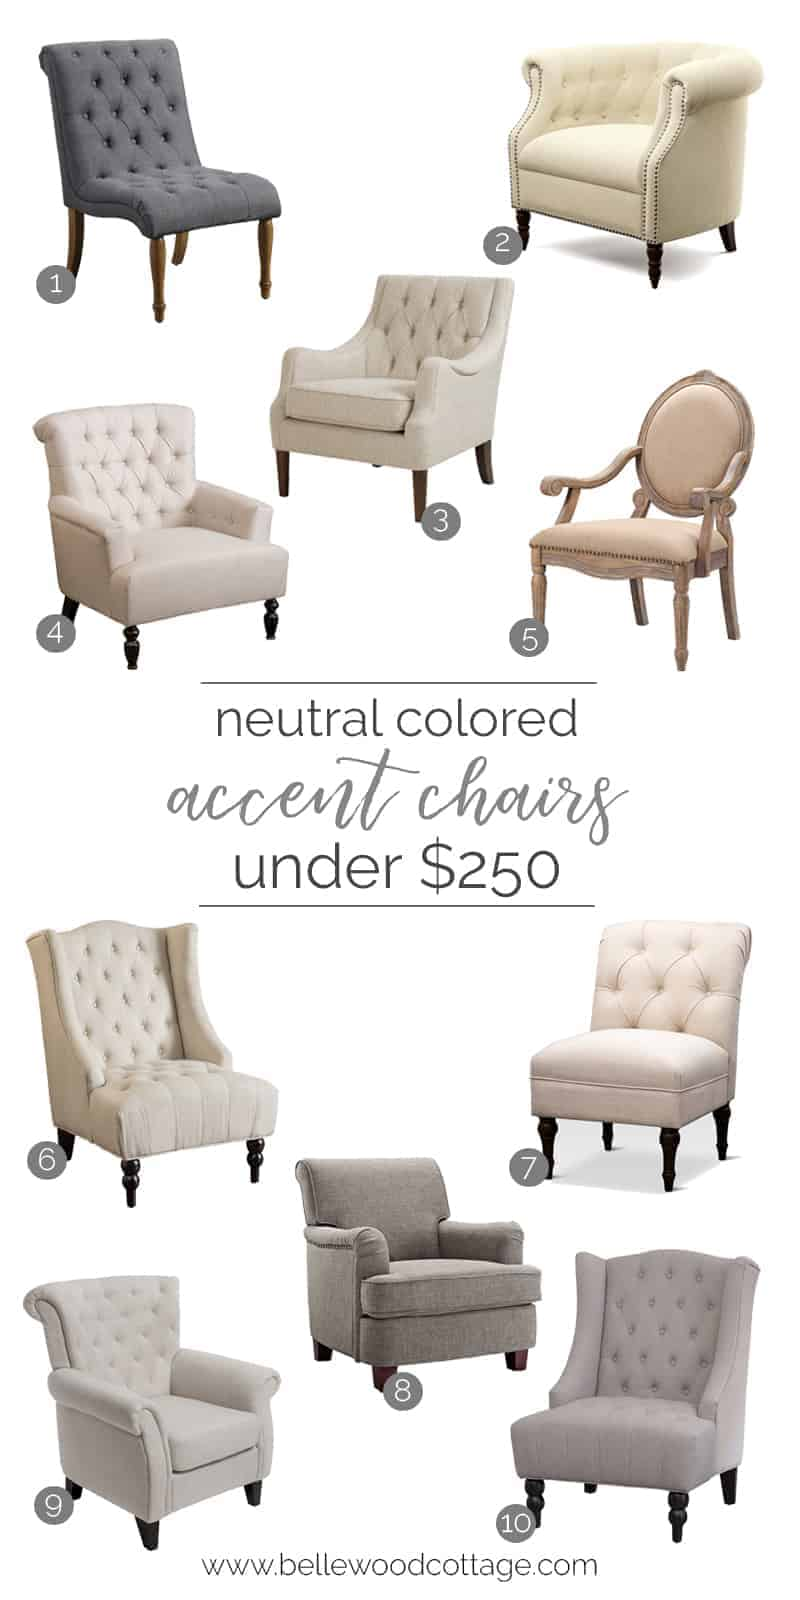 Adding style to your home AND sticking to a tight budget isn't always easy! Get inspired to refresh your home decor with this budget-friendly roundup of neutral accent chairs under $250 from Bellewood Cottage.